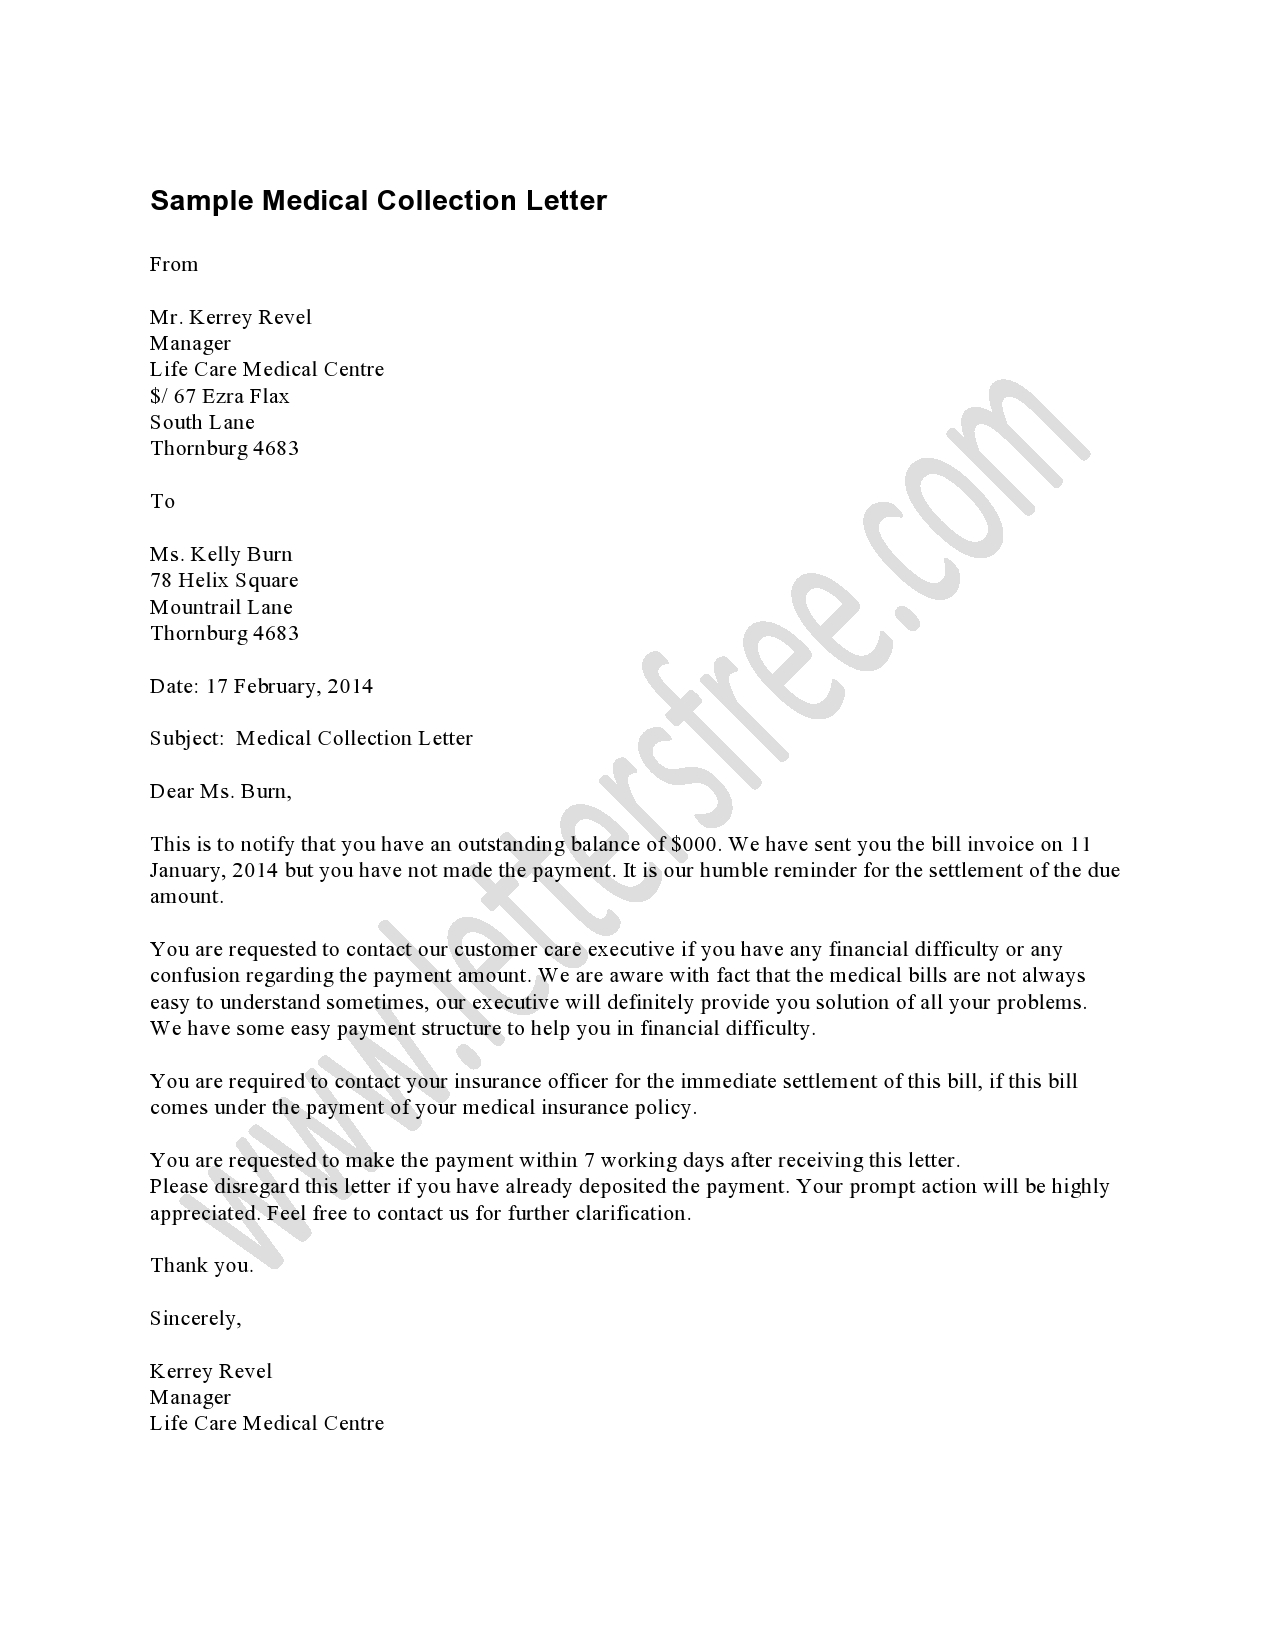 Hipaa letter medical collection template collection letter templates hipaa letter medical collection template collections letter template for business choice image business friedricerecipe Images